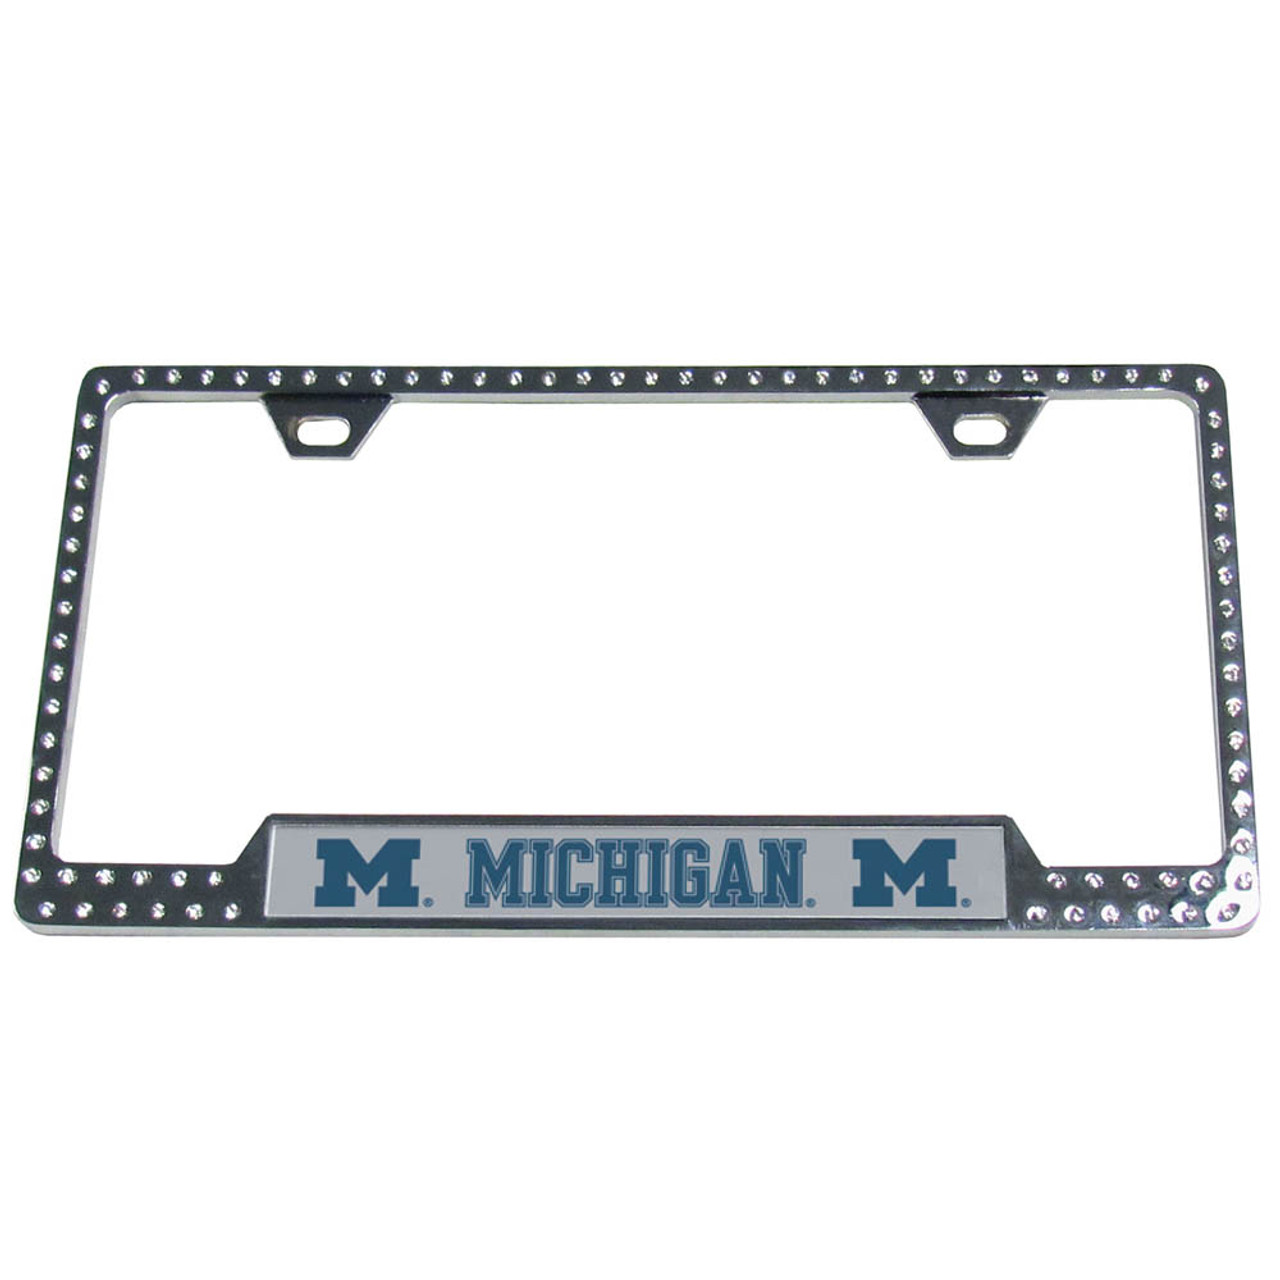 Michigan Wolverines Bling License Plate Frame - CarDetails.com